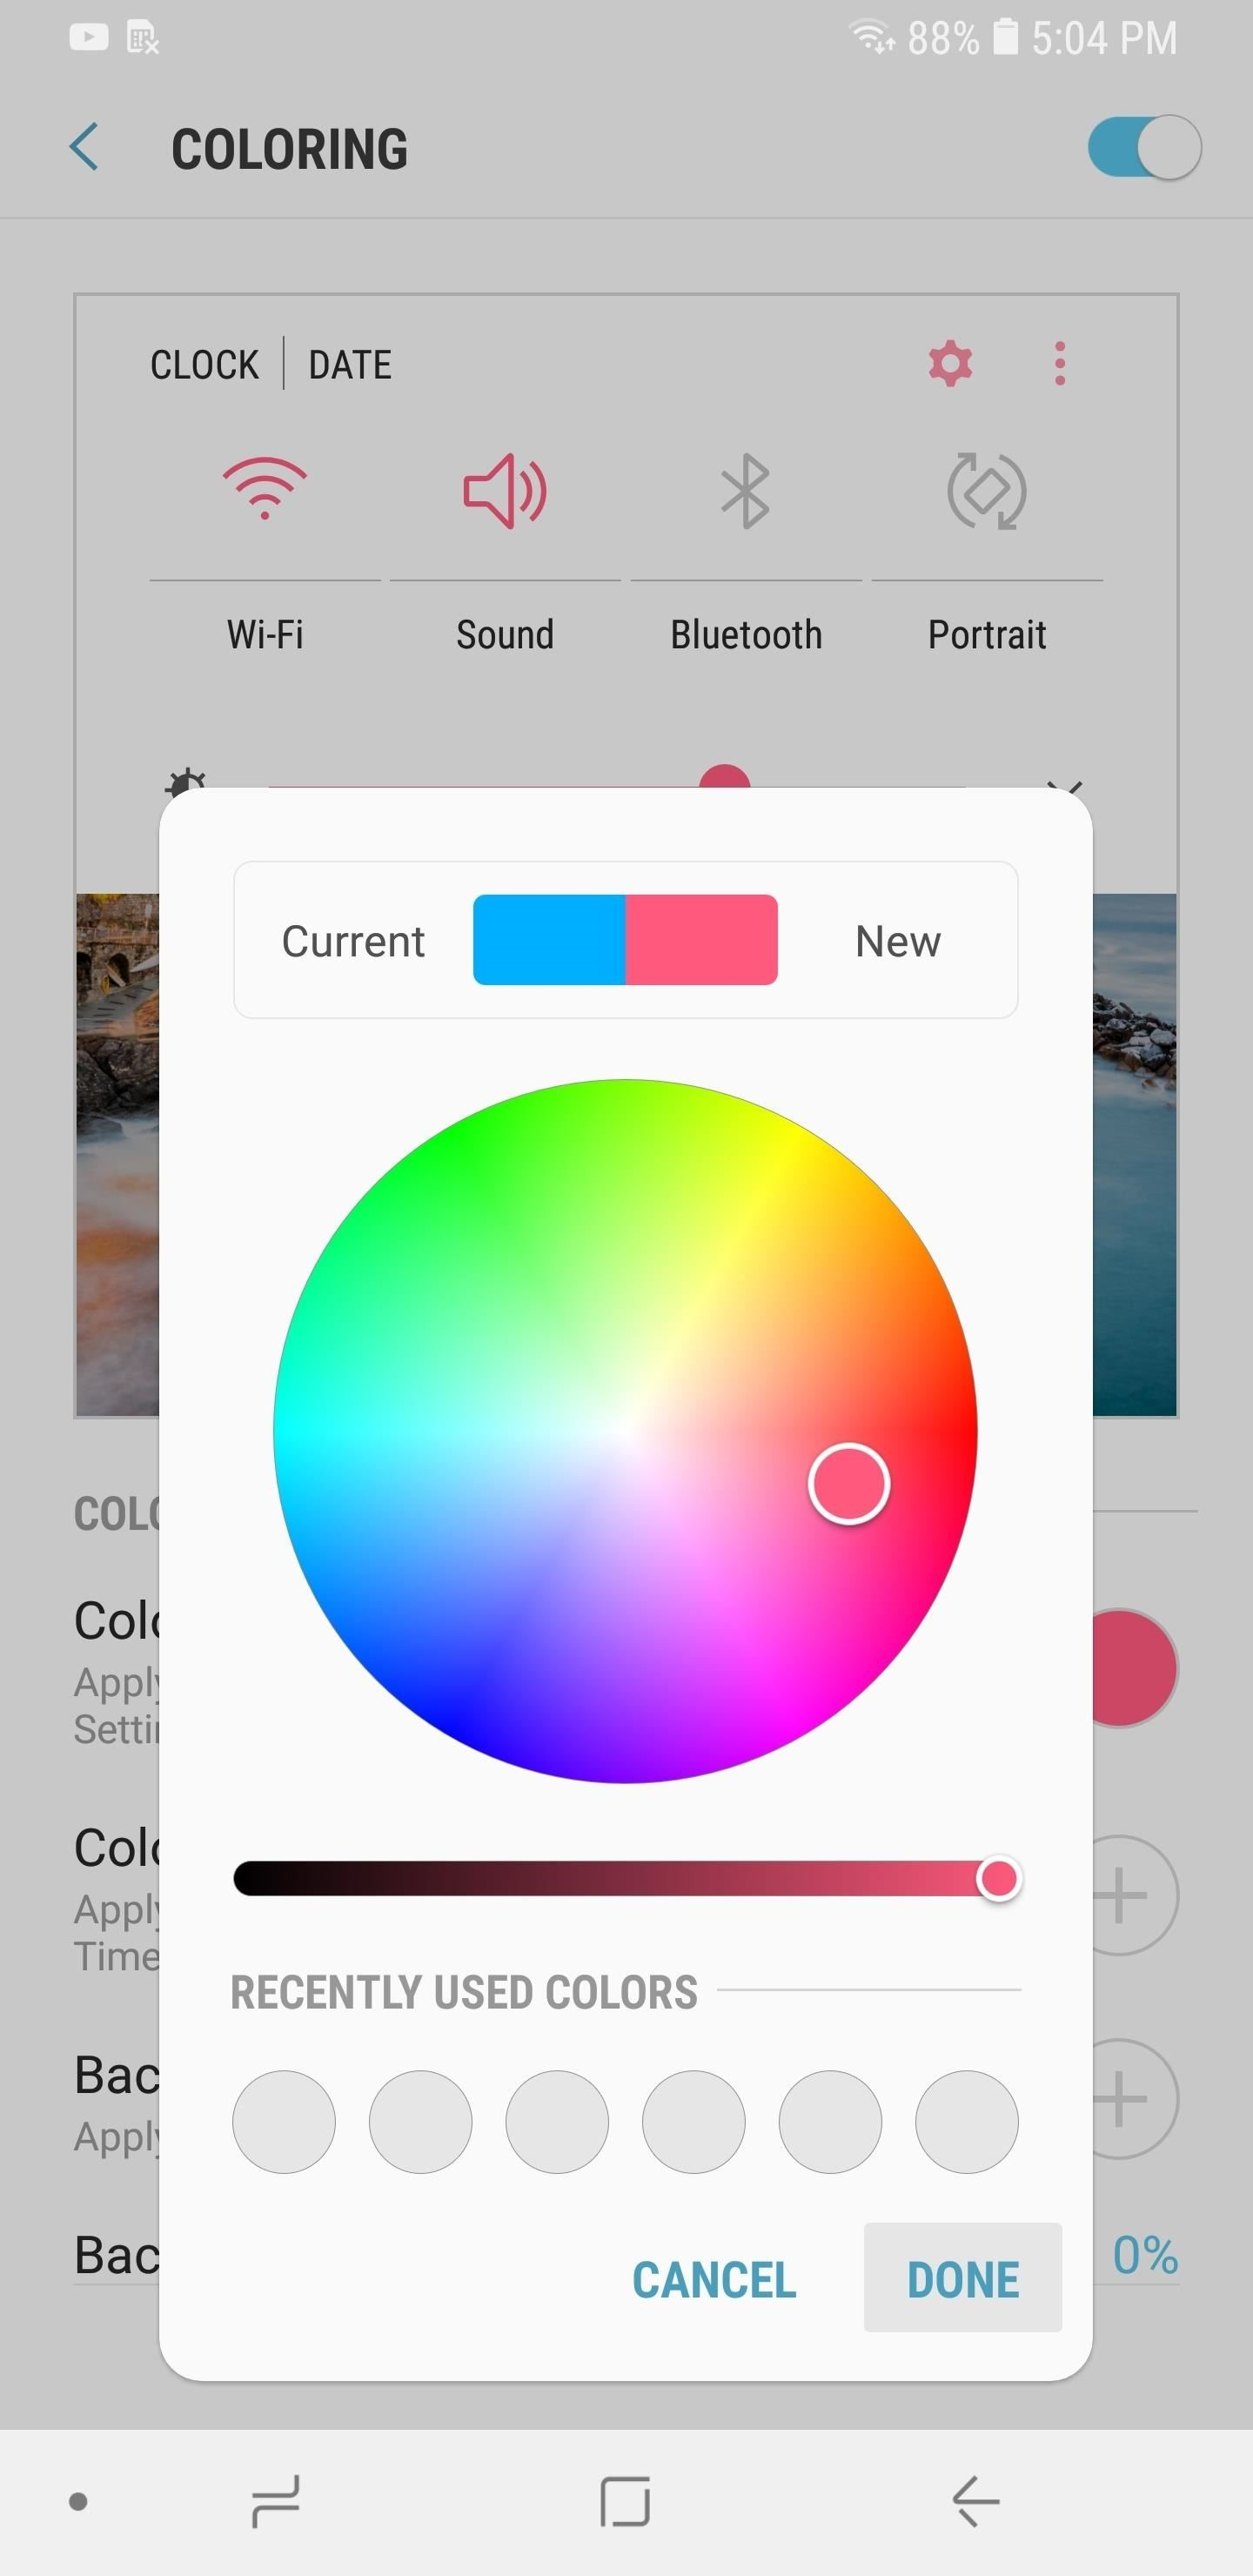 hight resolution of selecting color 2 will yield the same option as color 1 but this time you get to set your desired color for the icons within quick settings panel that